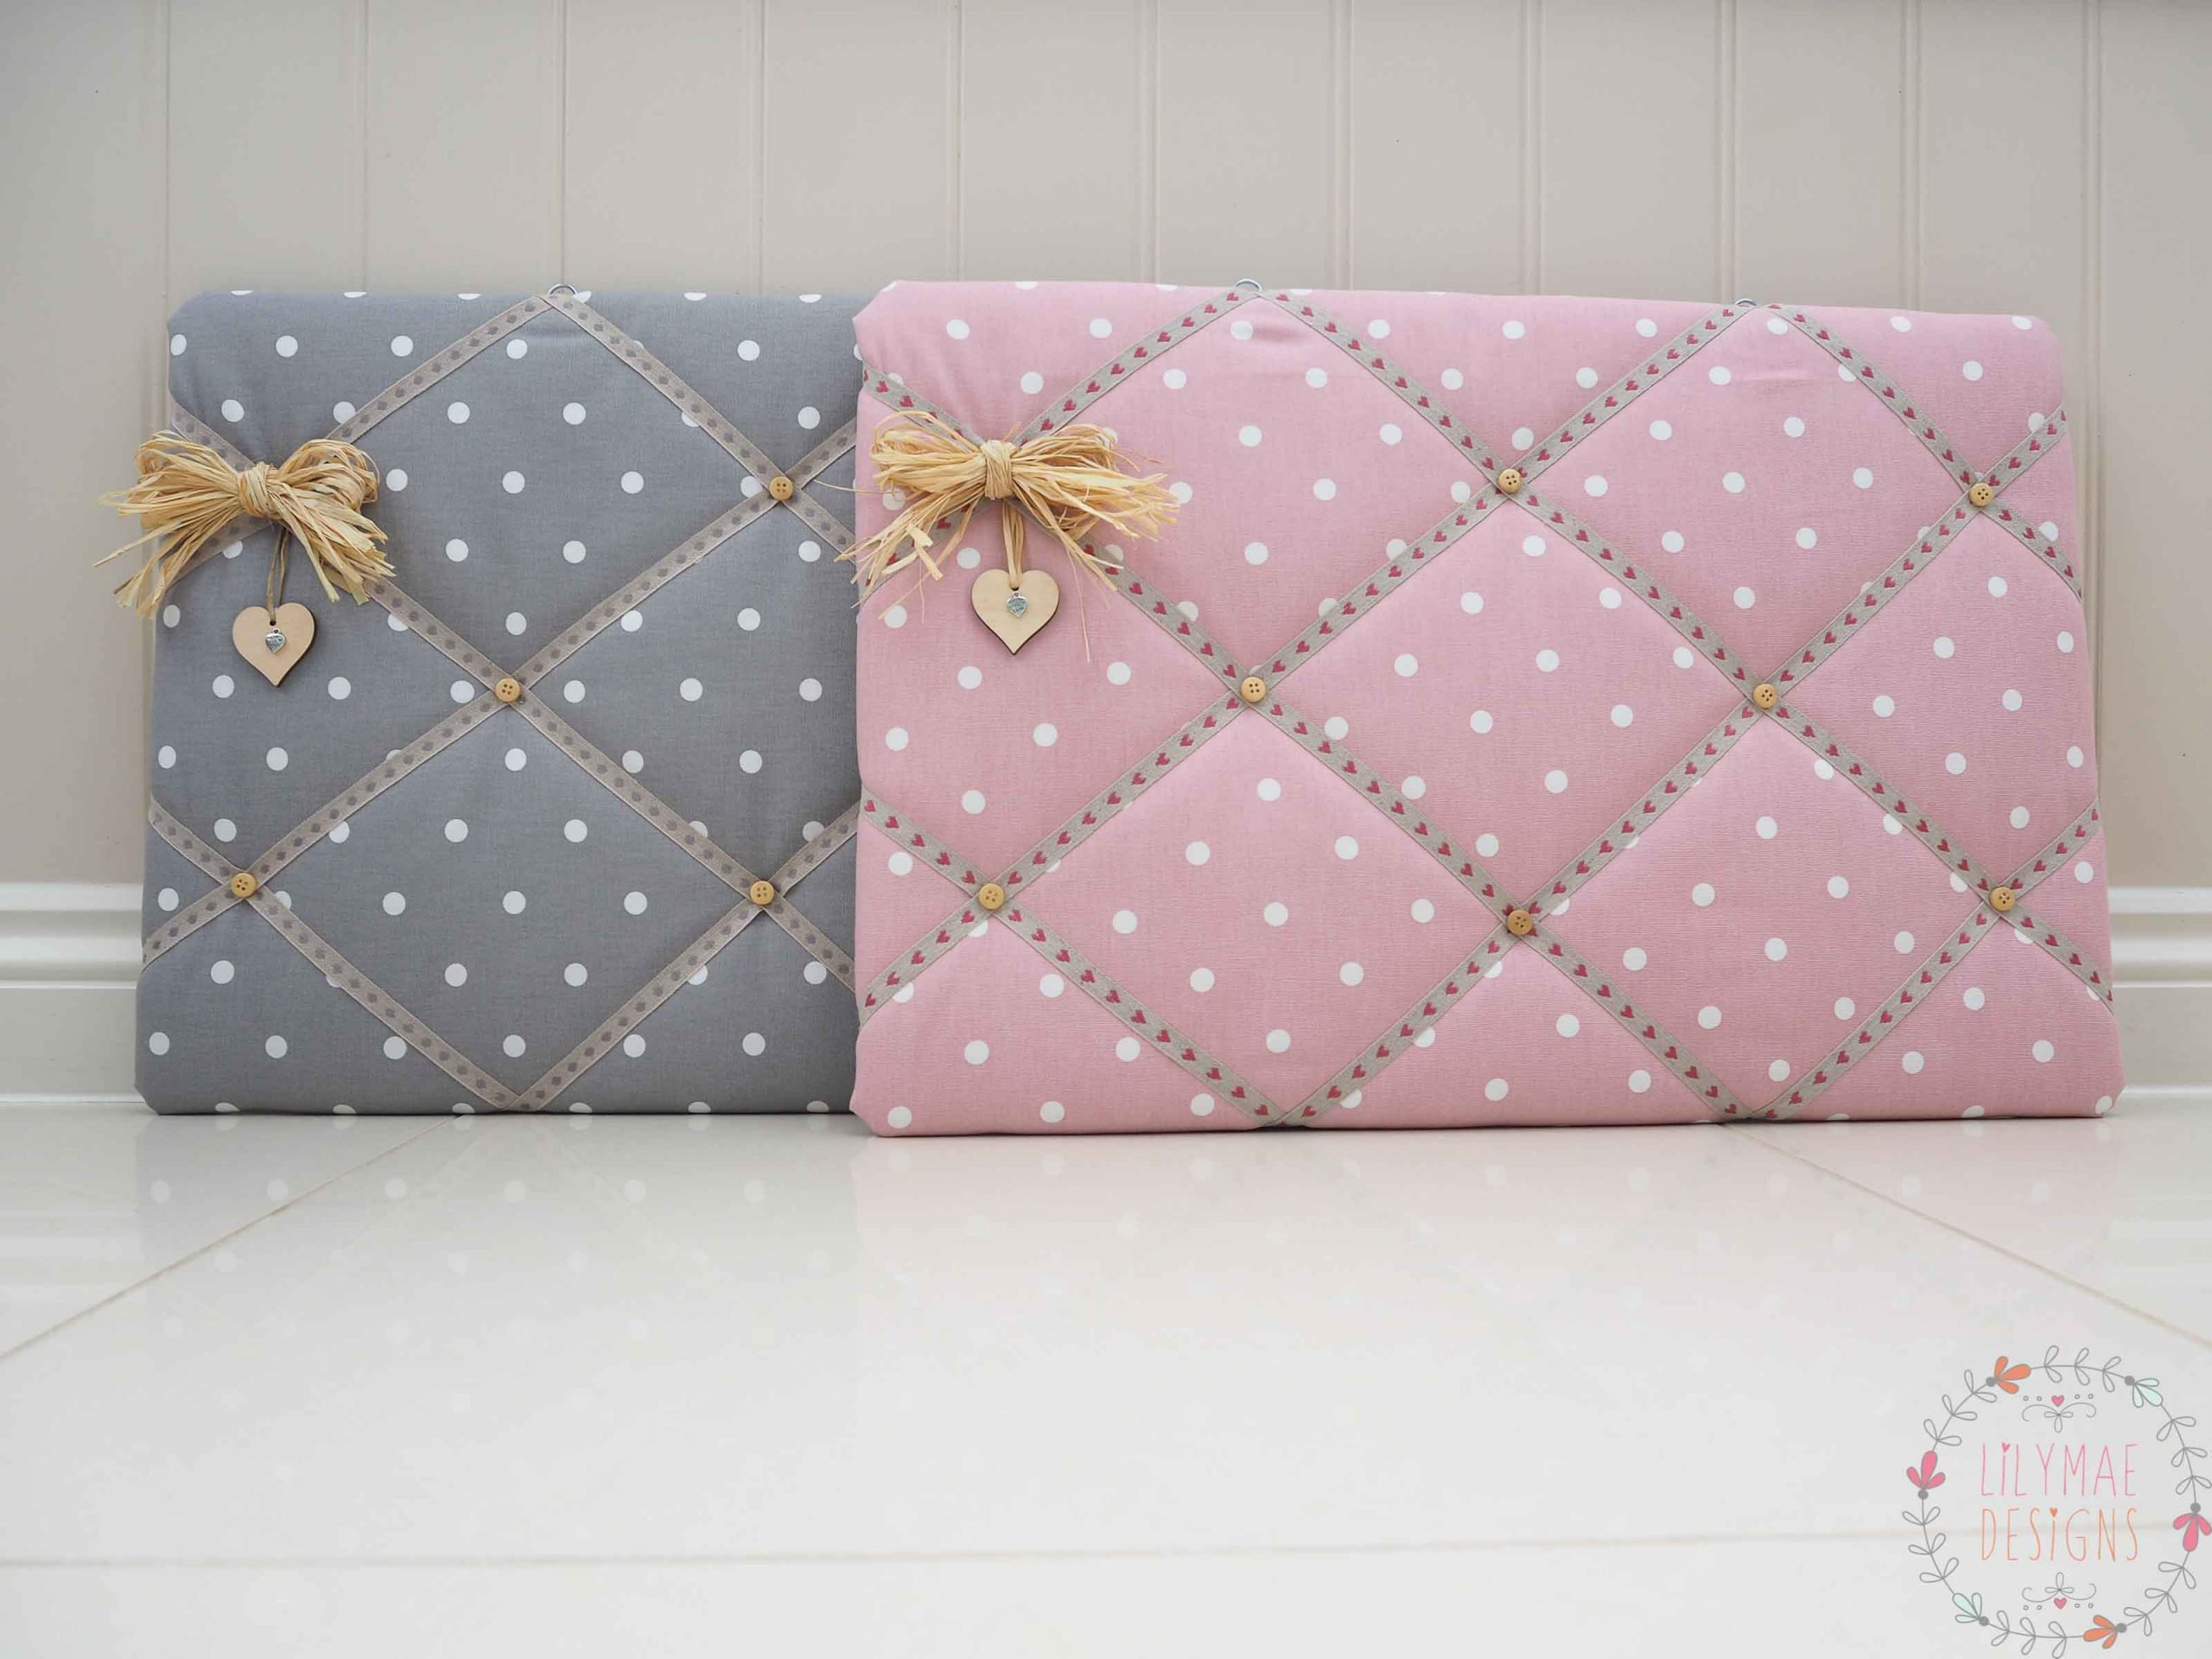 Fabric memo boards handmade to order in Dotty rose and Dotty Smokey Grey. Kitchen Notice board, Christmas present for mum. Lilymae Designs ★ Lilymae Designs ★ We offer many items including Extra Large Fabric Letters in sizes 22cm tall, 25cm tall, 30cm tall, 40cm tall, 50cm tall and 60cm tall., Fabric Hearts, Butterflies, Stars, Birds, Bunting, Memo Boards, Extra Large Memo Boards, Cushions, Lampshades, Curtains and Roman Blinds Available in any of our Clarke and Clarke and Prestigious Textiles fabrics. Custom fabric letter sizes available on request. Our Extra large letters make great nursery decor, wall decor and home decor in any room. Also great gifts, new baby gift, new baby present baby shower gift baby shower present christening gift christening present little brother little sister niece nephew grandson godson granddaughter goddaughter first birthday gift first birthday present children's birthday present children's birthday gift new home gift new home present teacher gift teacher present dinner party gift dinner party present mum present mum gift sister gift sister present first home gift first home present wedding gift wedding present personalised gift personalised present best friends present best friend gift baby boy gift baby girl gift baby boy present baby girl present wedding gift wedding present flower girl gift flower girl present page boy gift page boy present bridesmaid present bridesmaid gift rainbow baby gift baby after loss gift tommys charity stillbirth awareness mothers day gift mothers day present mum gift mum present Personalised, handmade and made to order here within the UK Extra Large Letter Name Sets